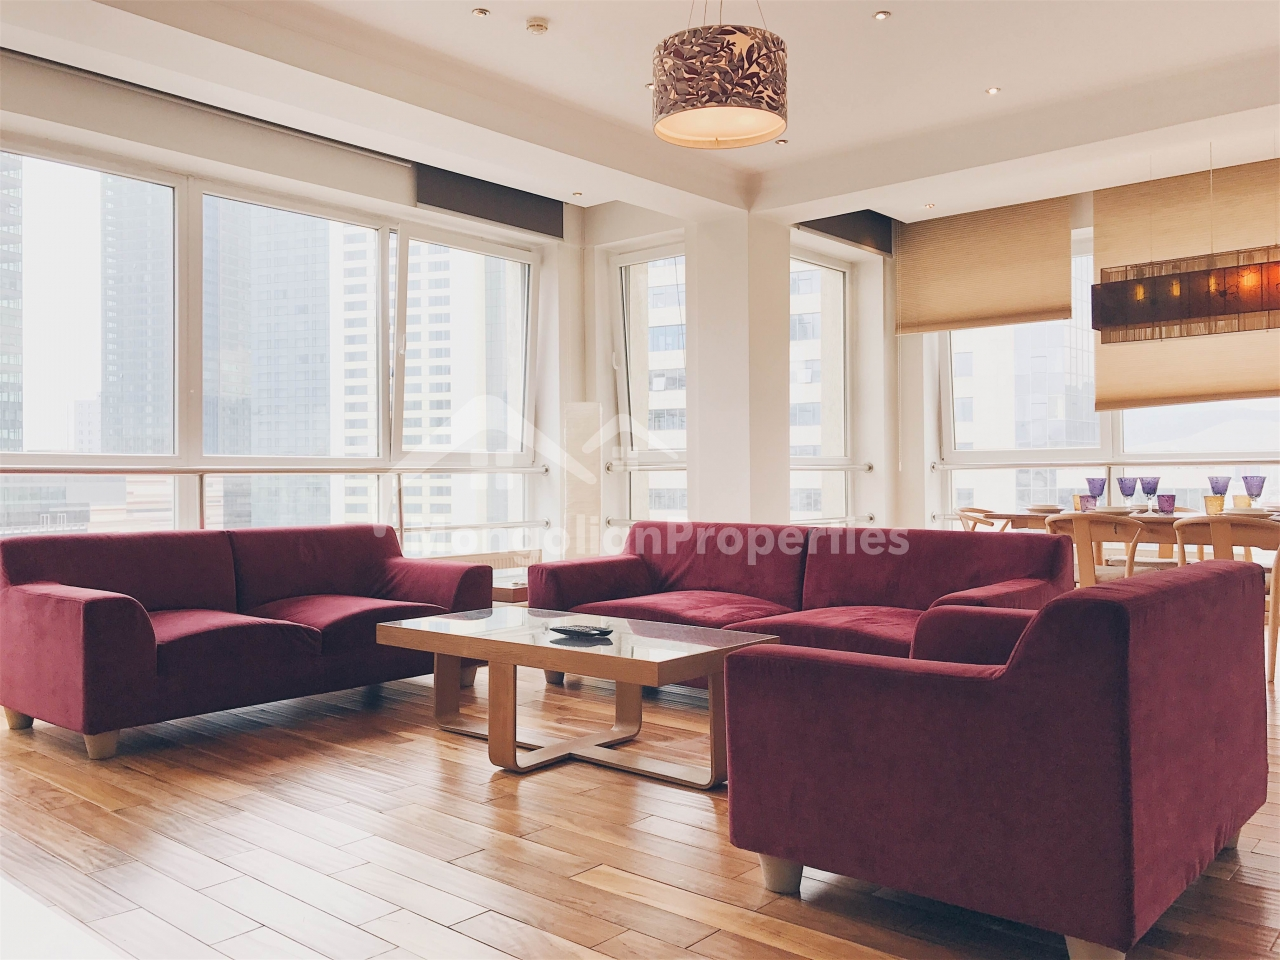 FOR RENT: SPACIOUS, COZY 2 BEDROOM APARTMENT AT TEMPLE VIEW RESIDENCE / DOWNTOWN